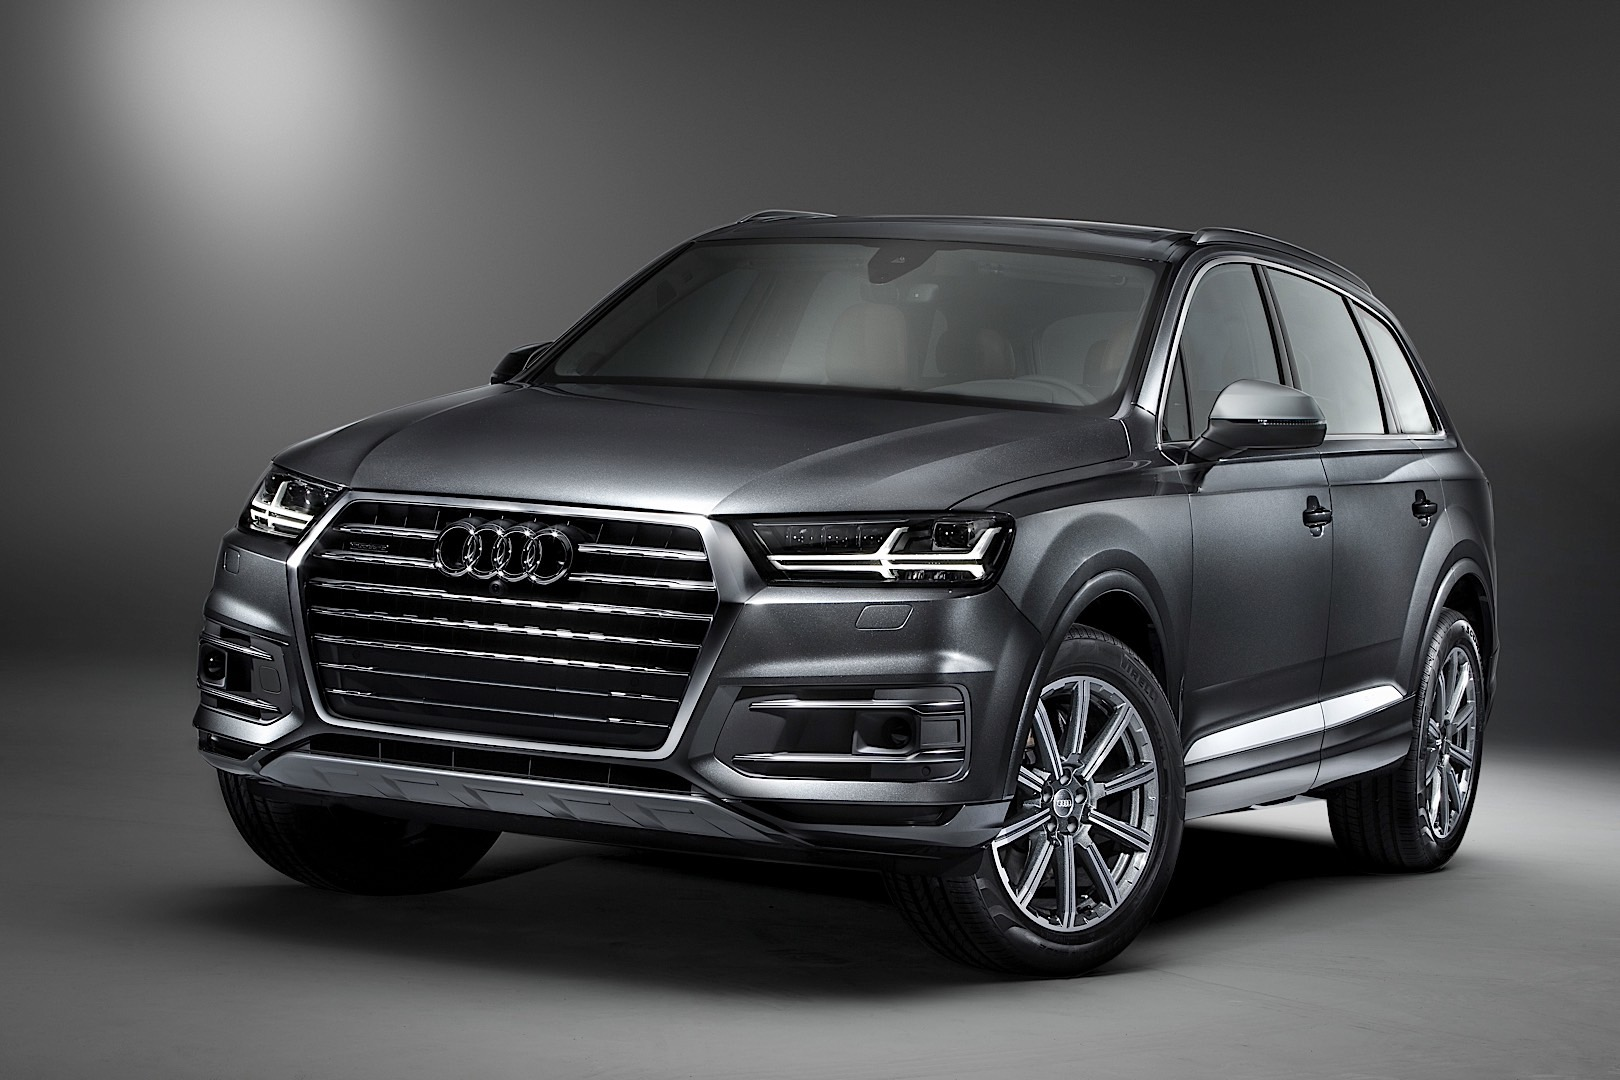 audi q7 prices for the us market revealed should make for. Black Bedroom Furniture Sets. Home Design Ideas